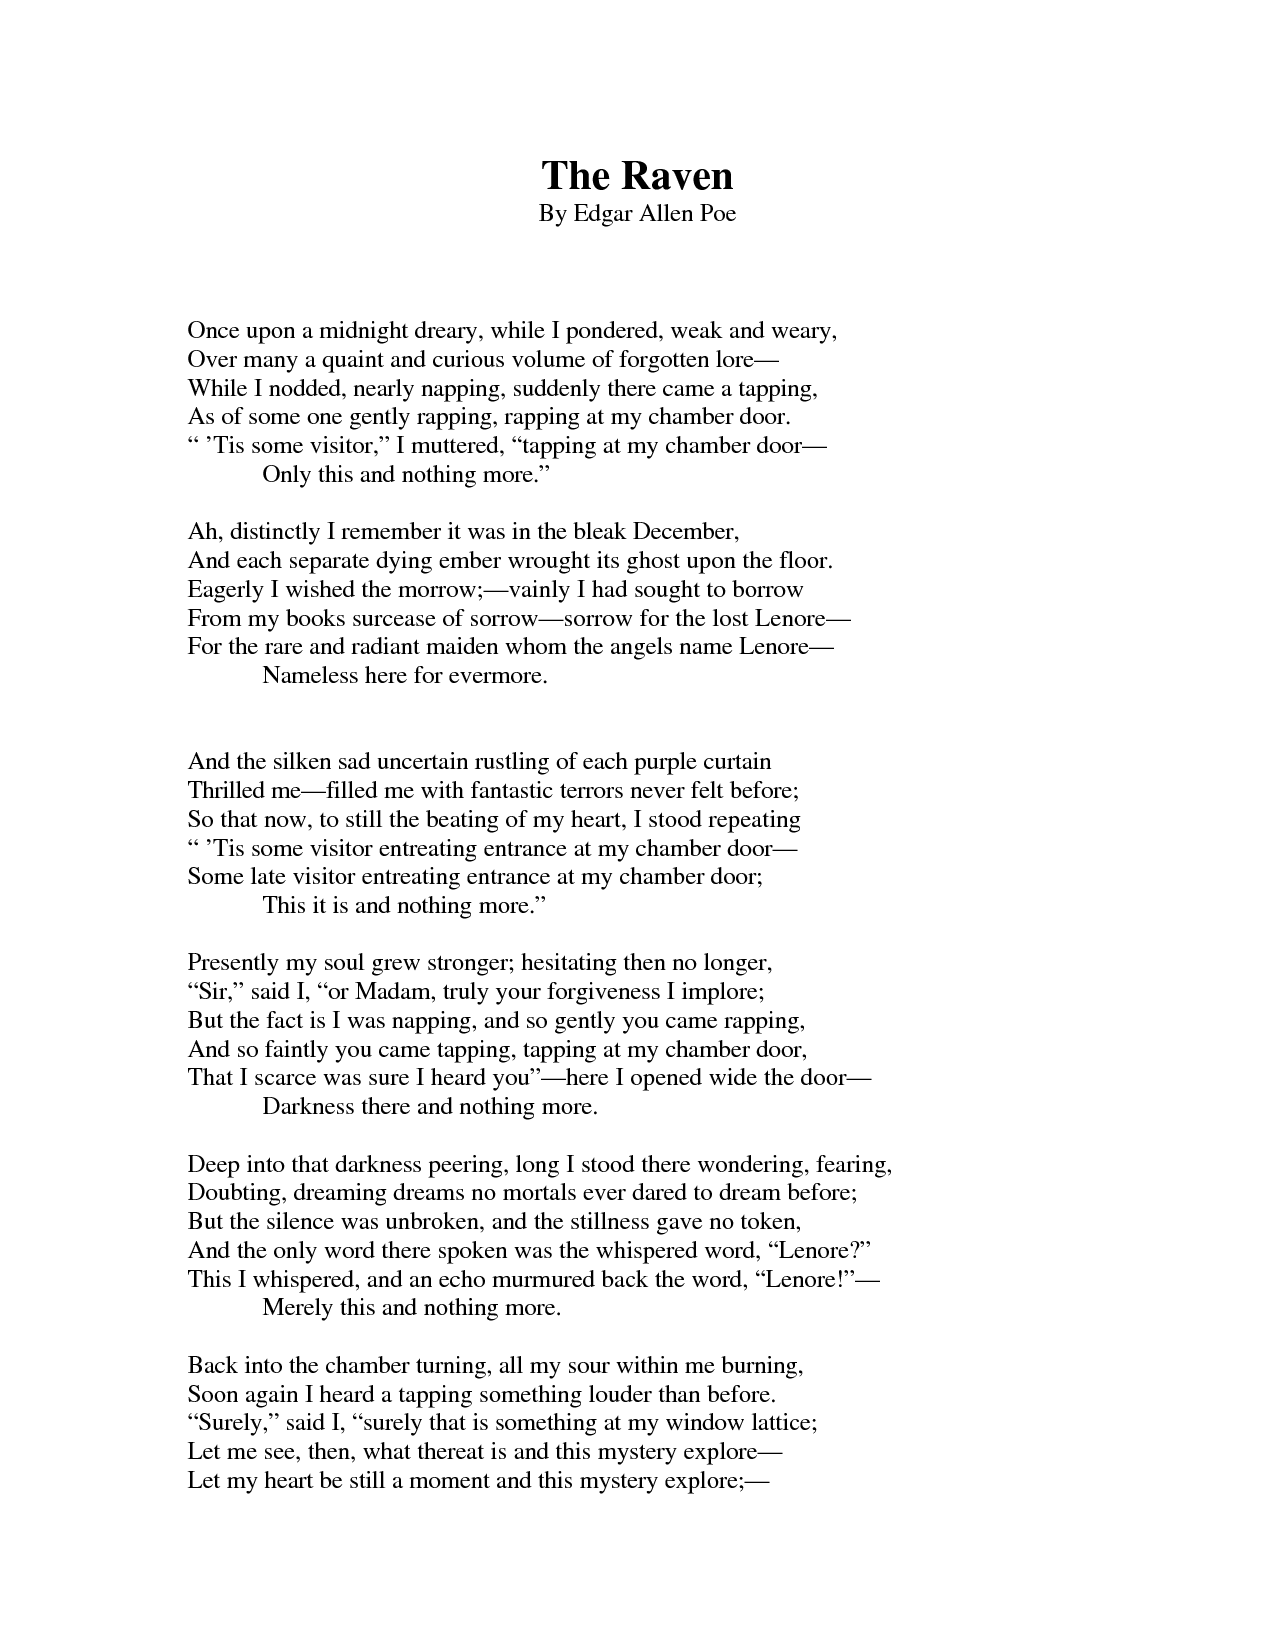 The Raven Poemysis Of The Raven By Edgar Allan Poe